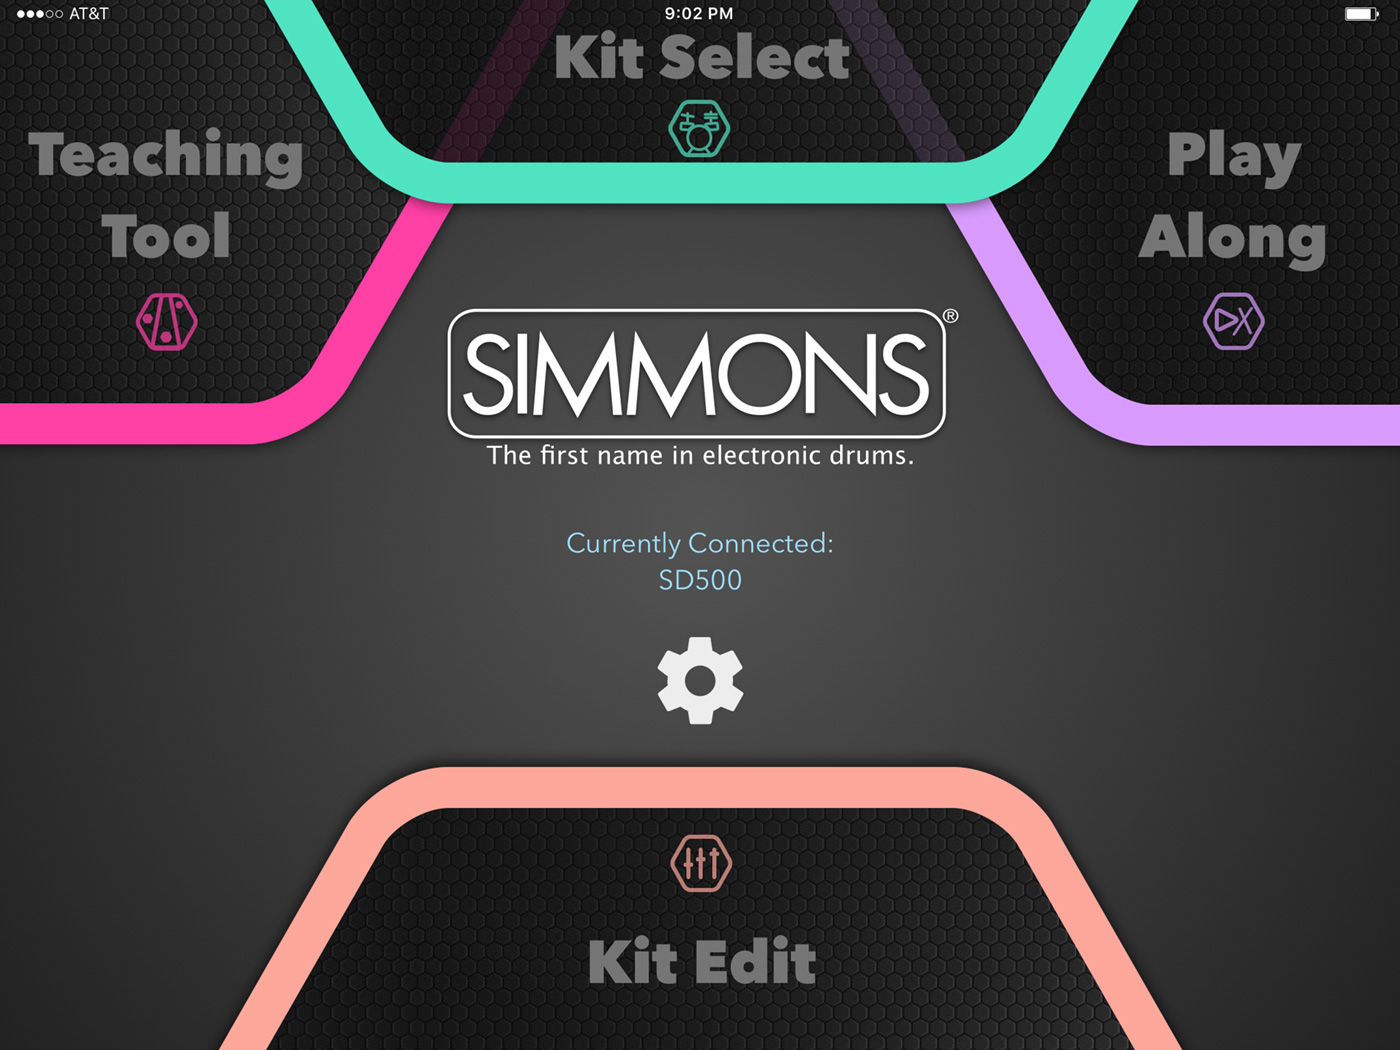 Simmons App Splash Mode